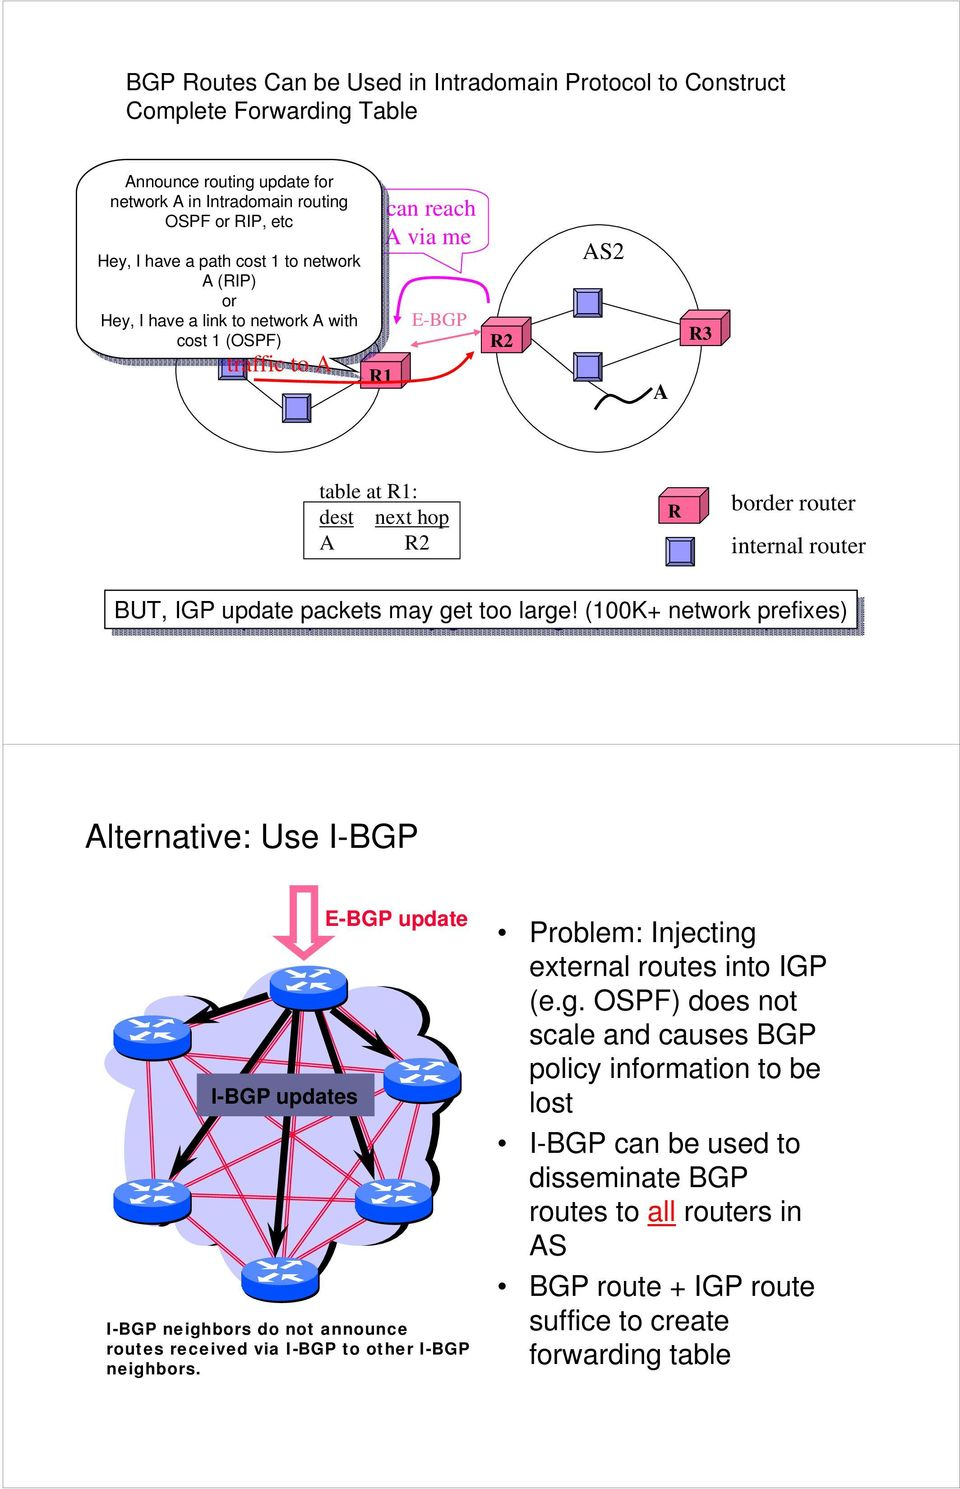 A with with cost cost 1 1 (OSPF) (OSPF) traffic to A you can reach net A via me R1 E-BGP R2 AS2 A R3 table at R1: dest next hop A R2 R border router internal router BUT, IGP IGP update packets may